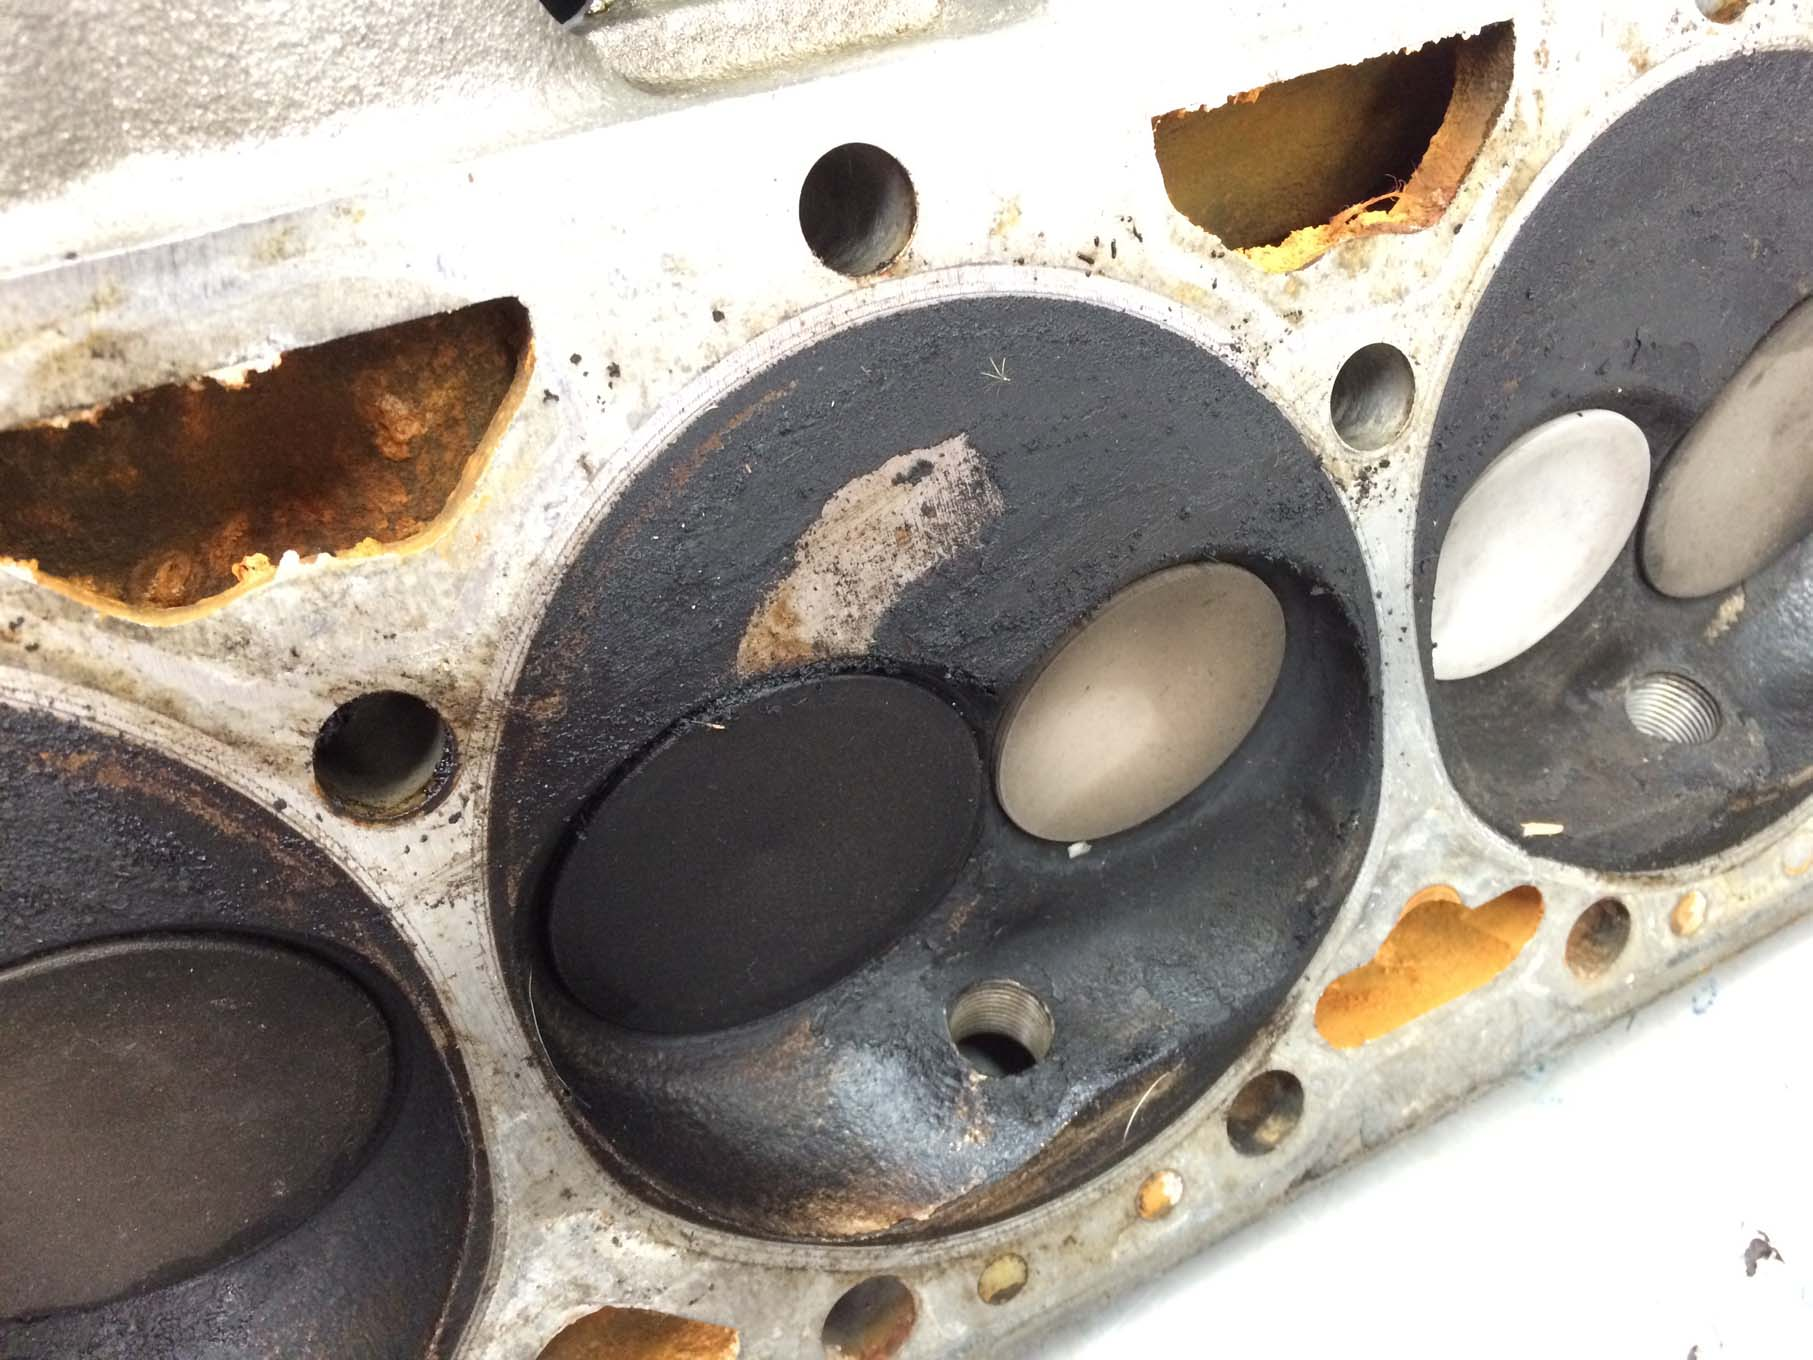 The head gaskets and intake gaskets look like they had been sealing properly, but there was a substantial amount of carbon buildup on the pistons and combustion chambers. This engine looks like it has more than 100,000 miles on it, when we've only driven it for about 5,000.